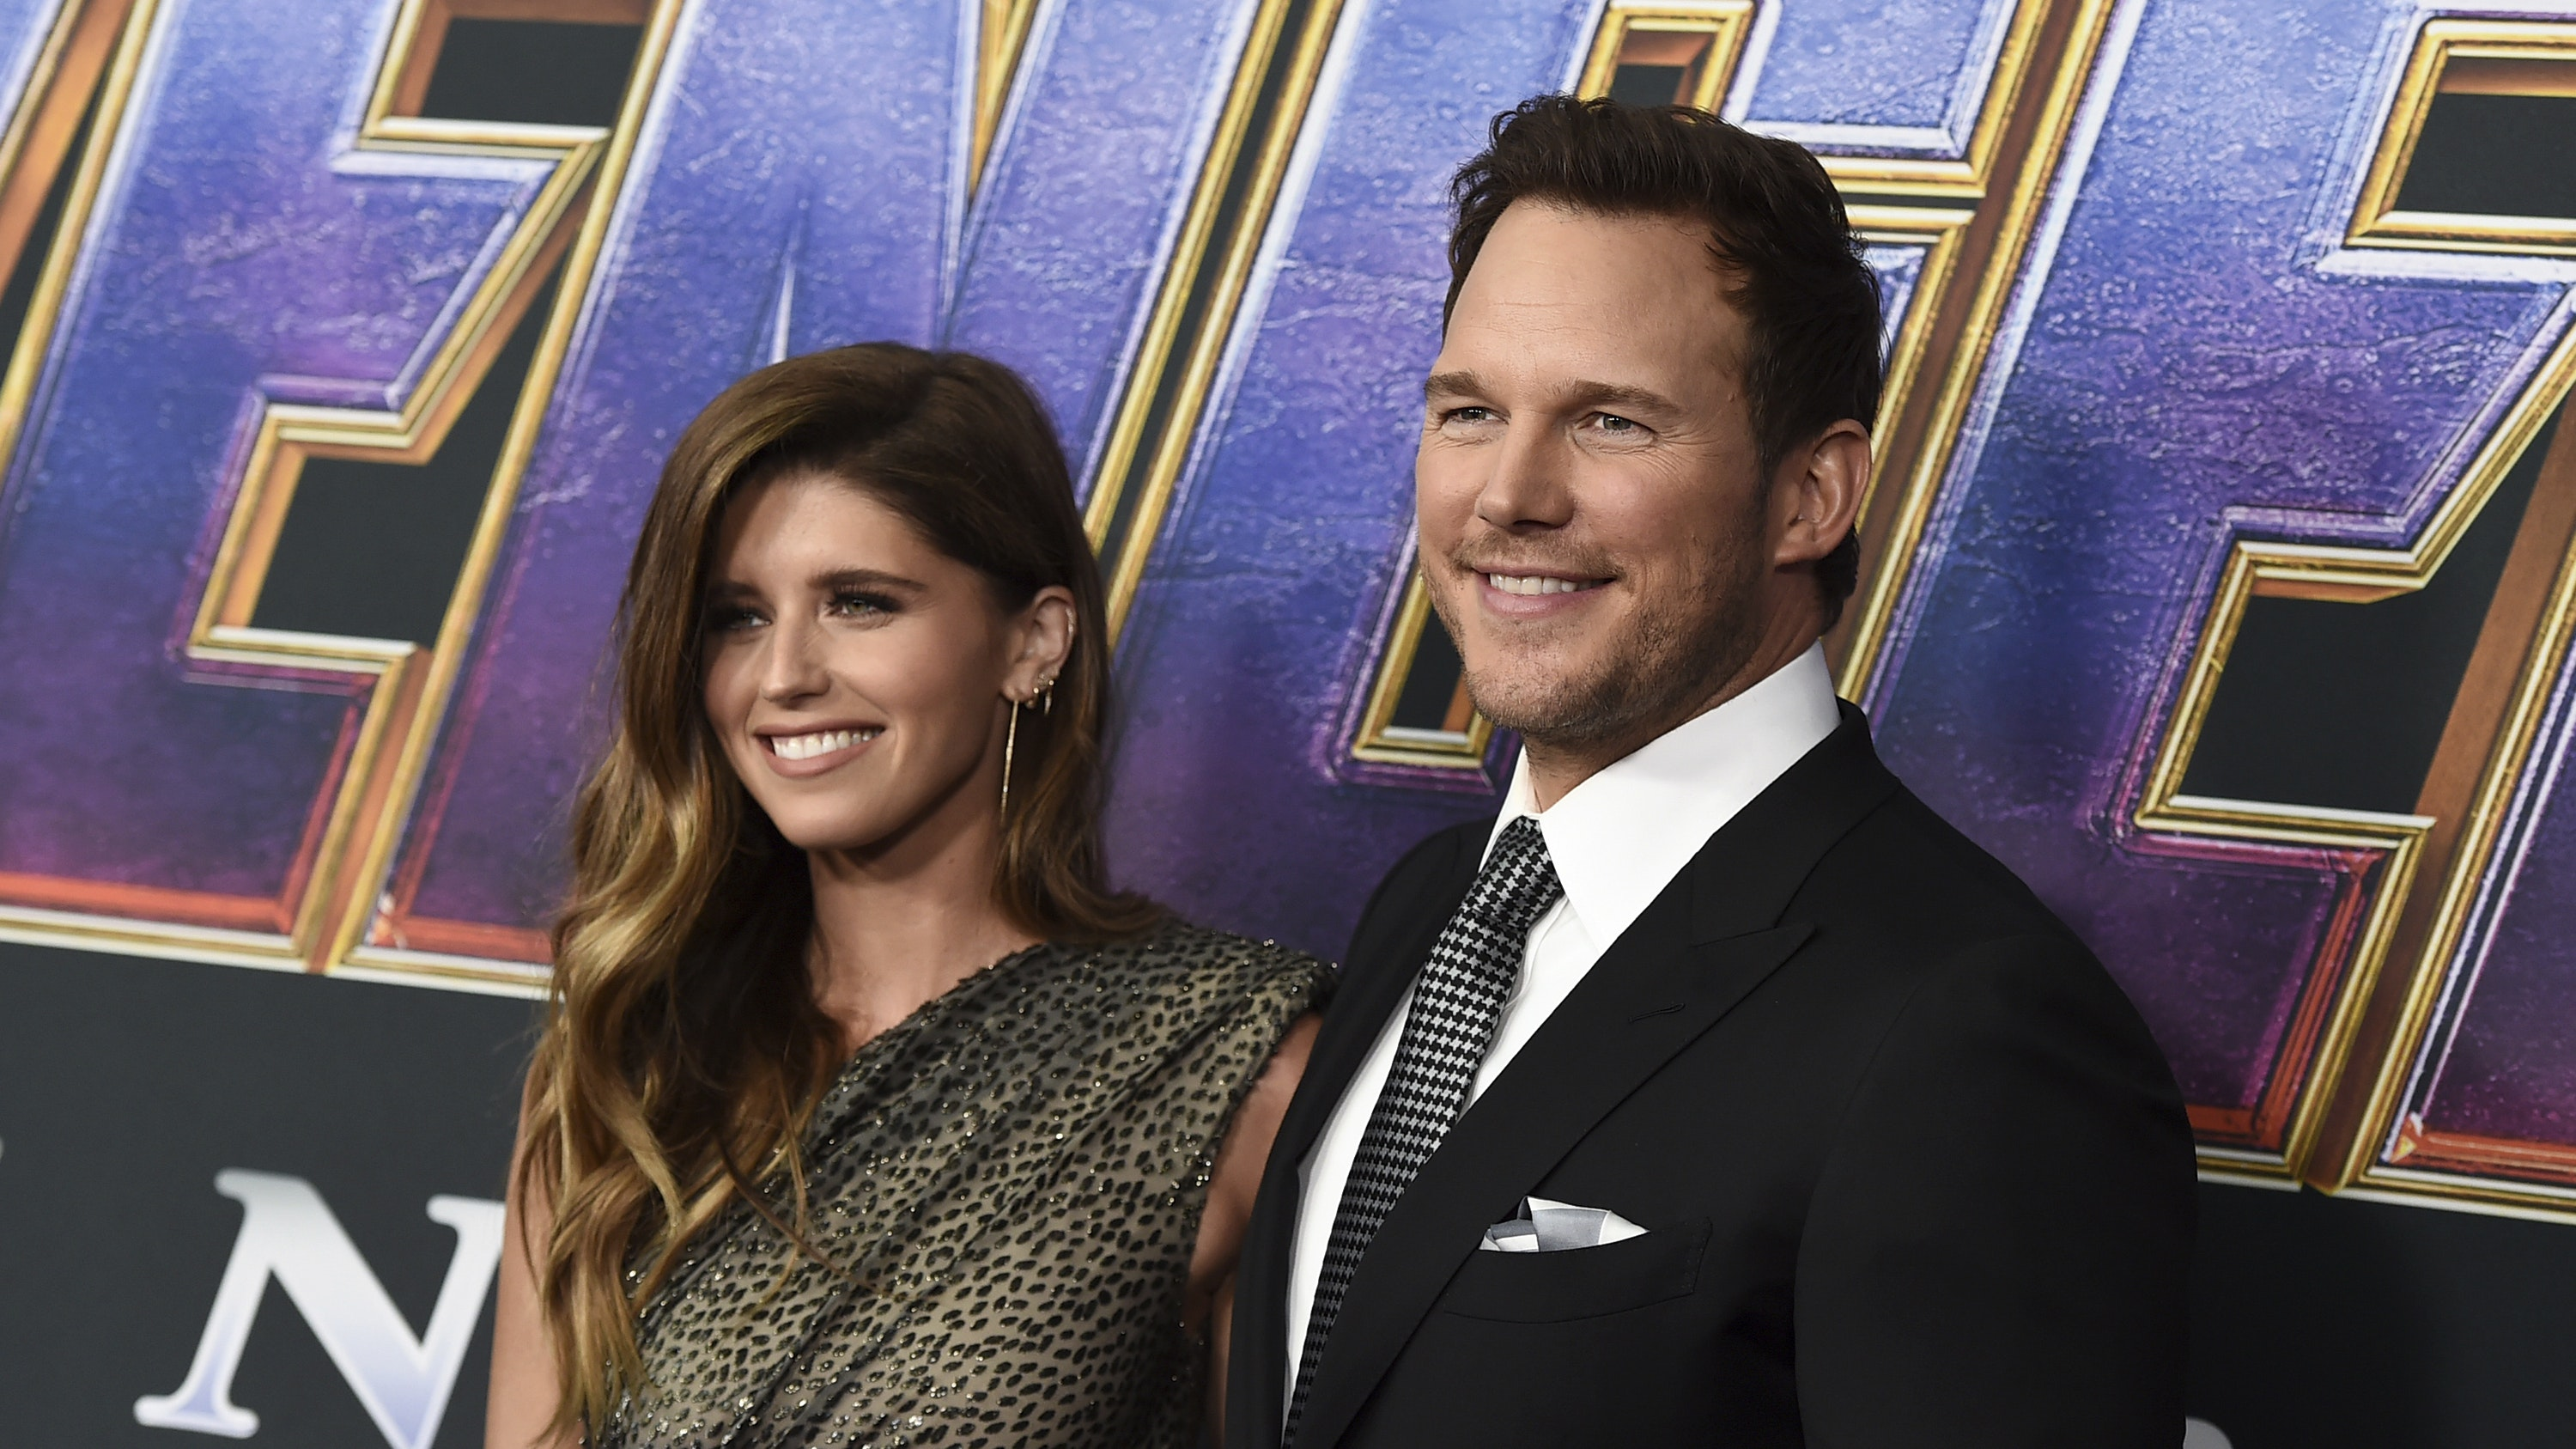 Chris Pratt and Katherine Schwarzenegger at Avengers premiere